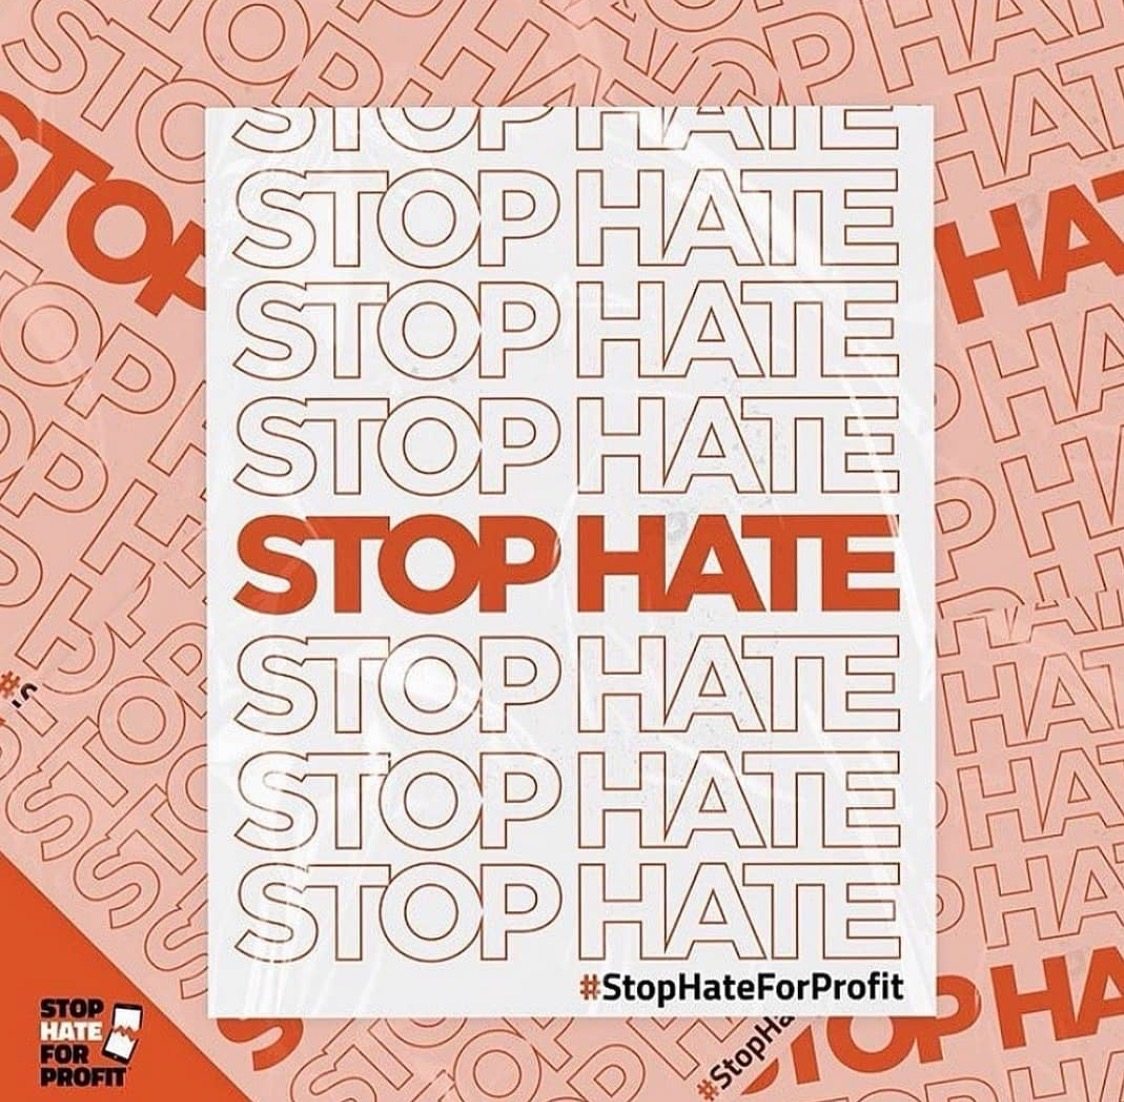 In solidarity with the #StopHateForProfit message, the D have moved their Premiere Collectibles LiveSigning to tomorrow at 1pm PT. https://t.co/YI7jTQALvD